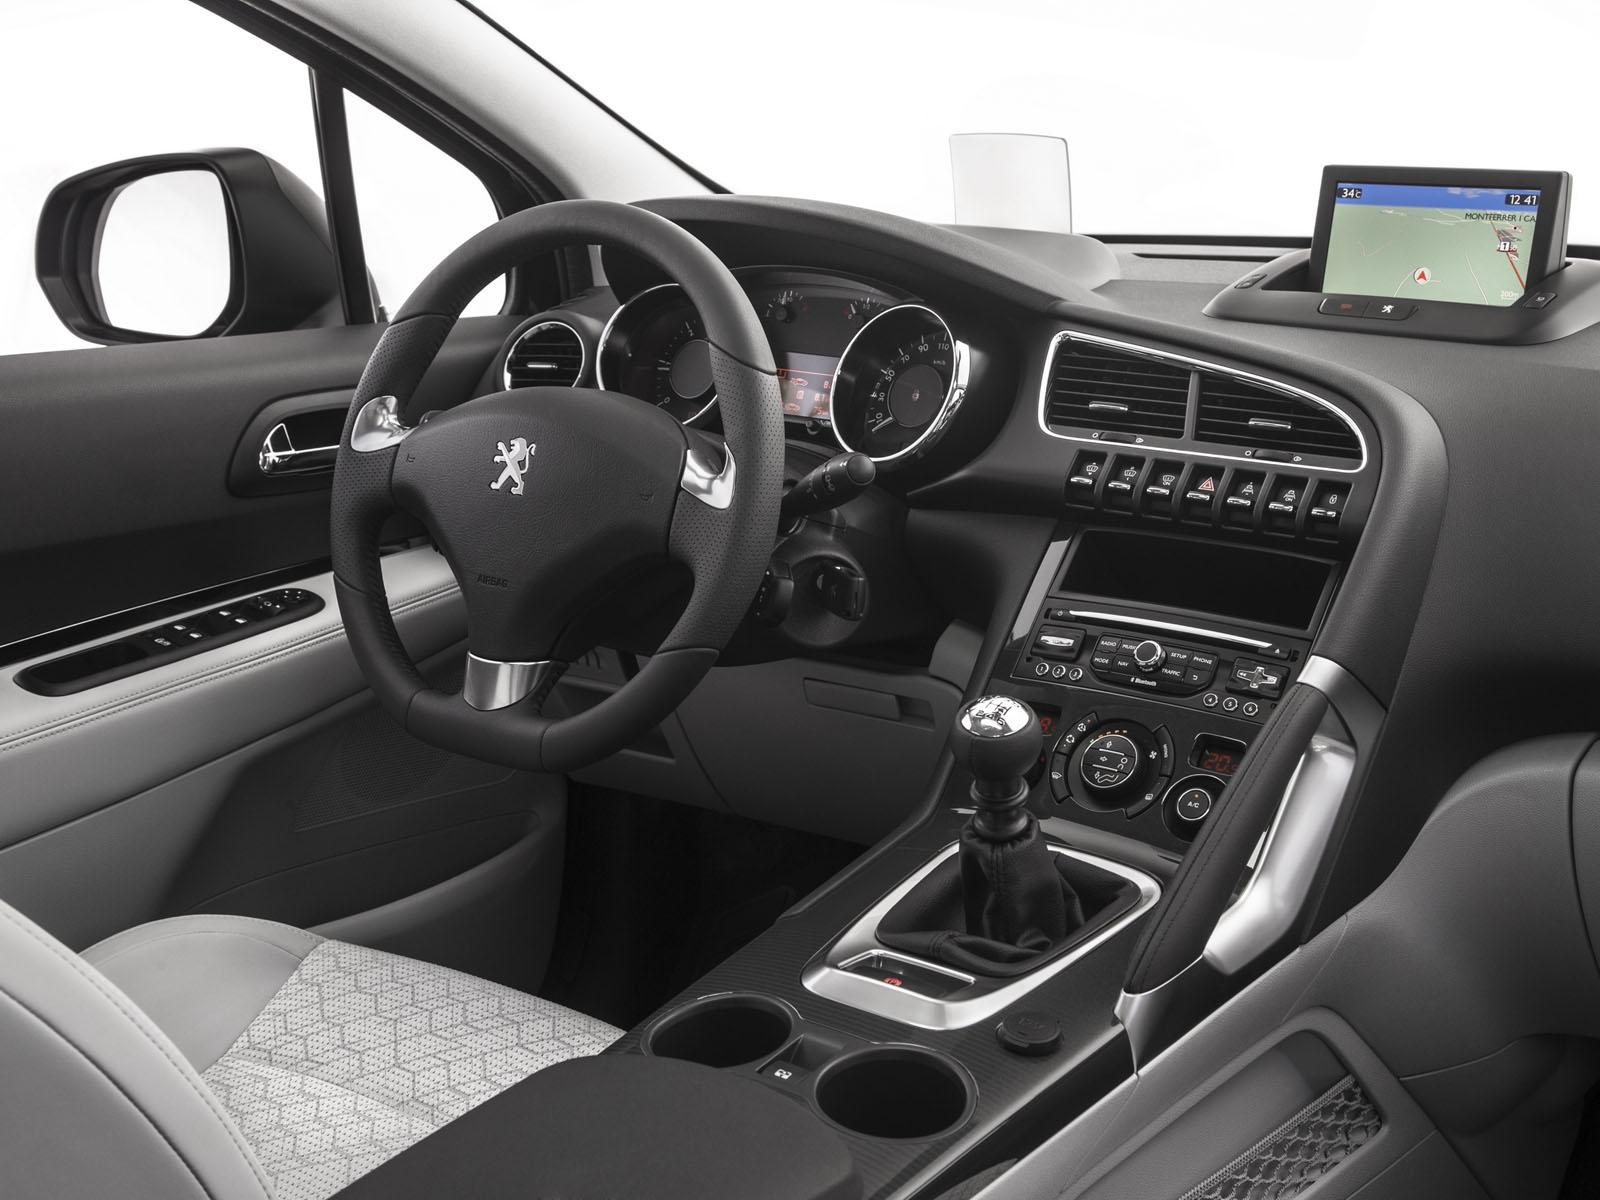 2014 Peugeot 3008 Interior Dashboard Forcegt Com